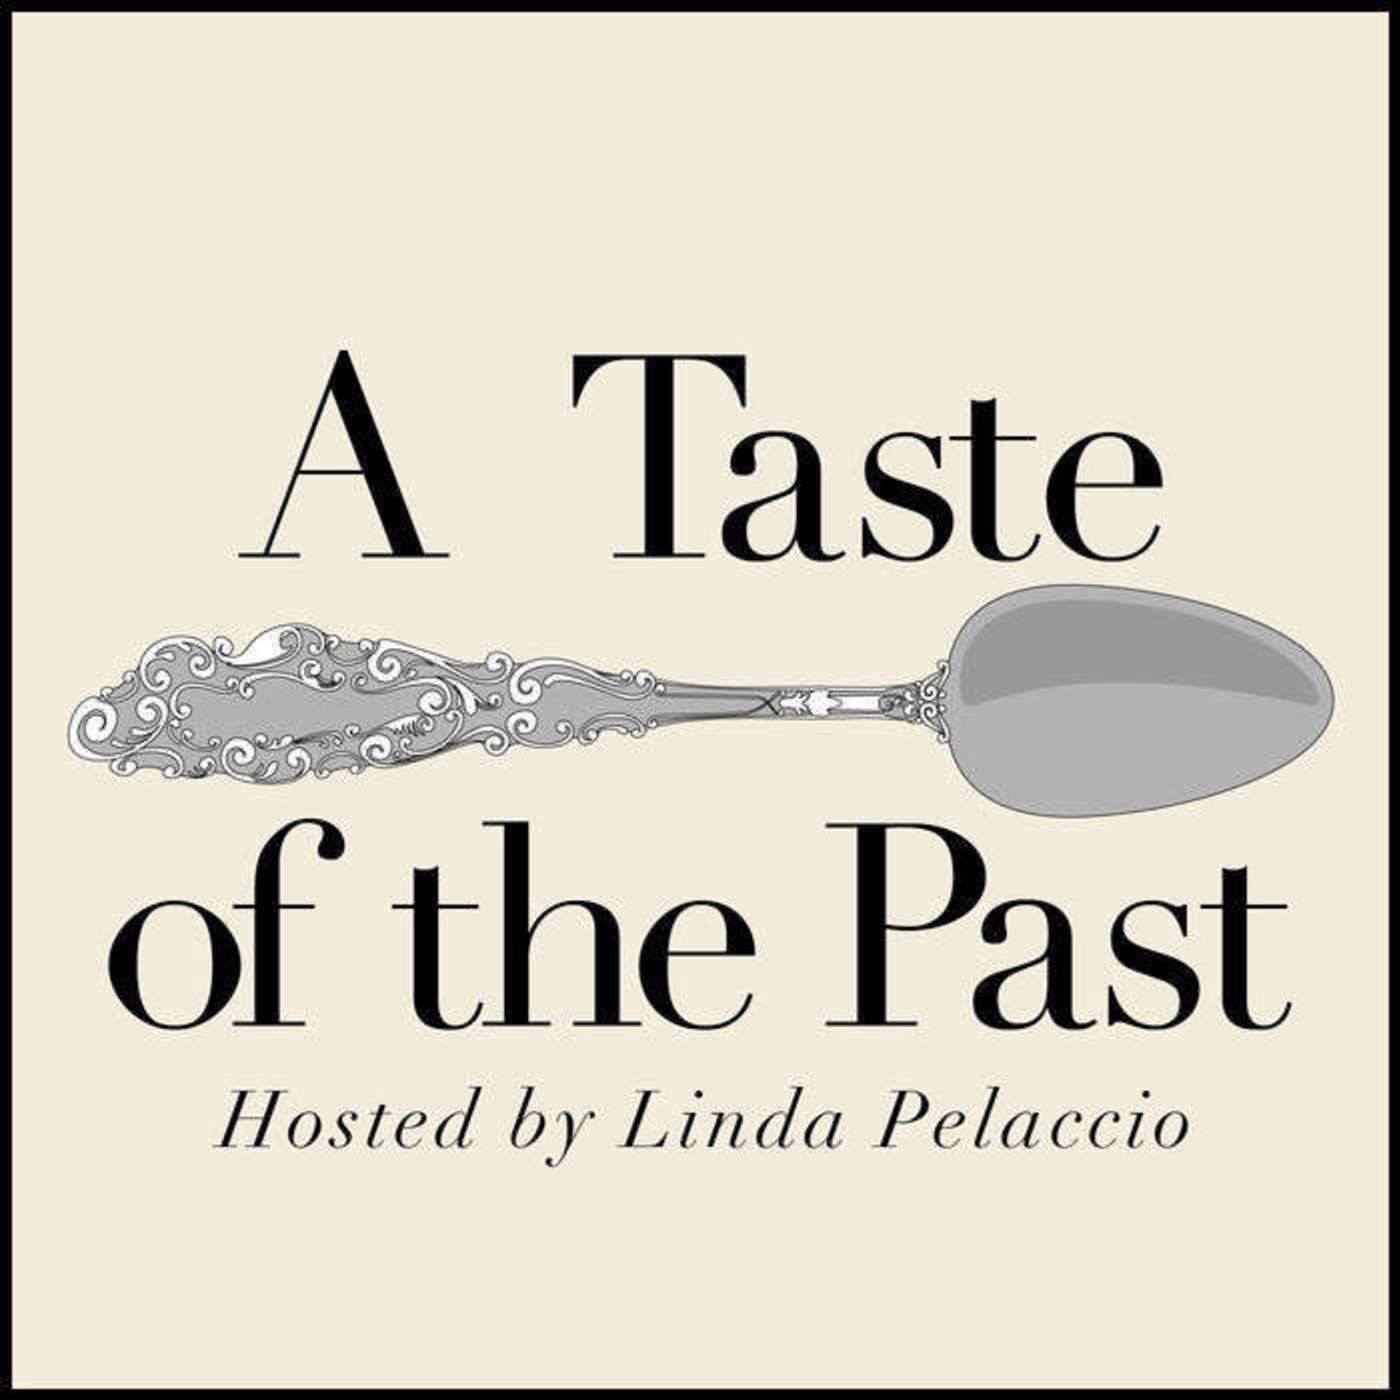 Episode 39: Thanksgiving and Historic Recipes